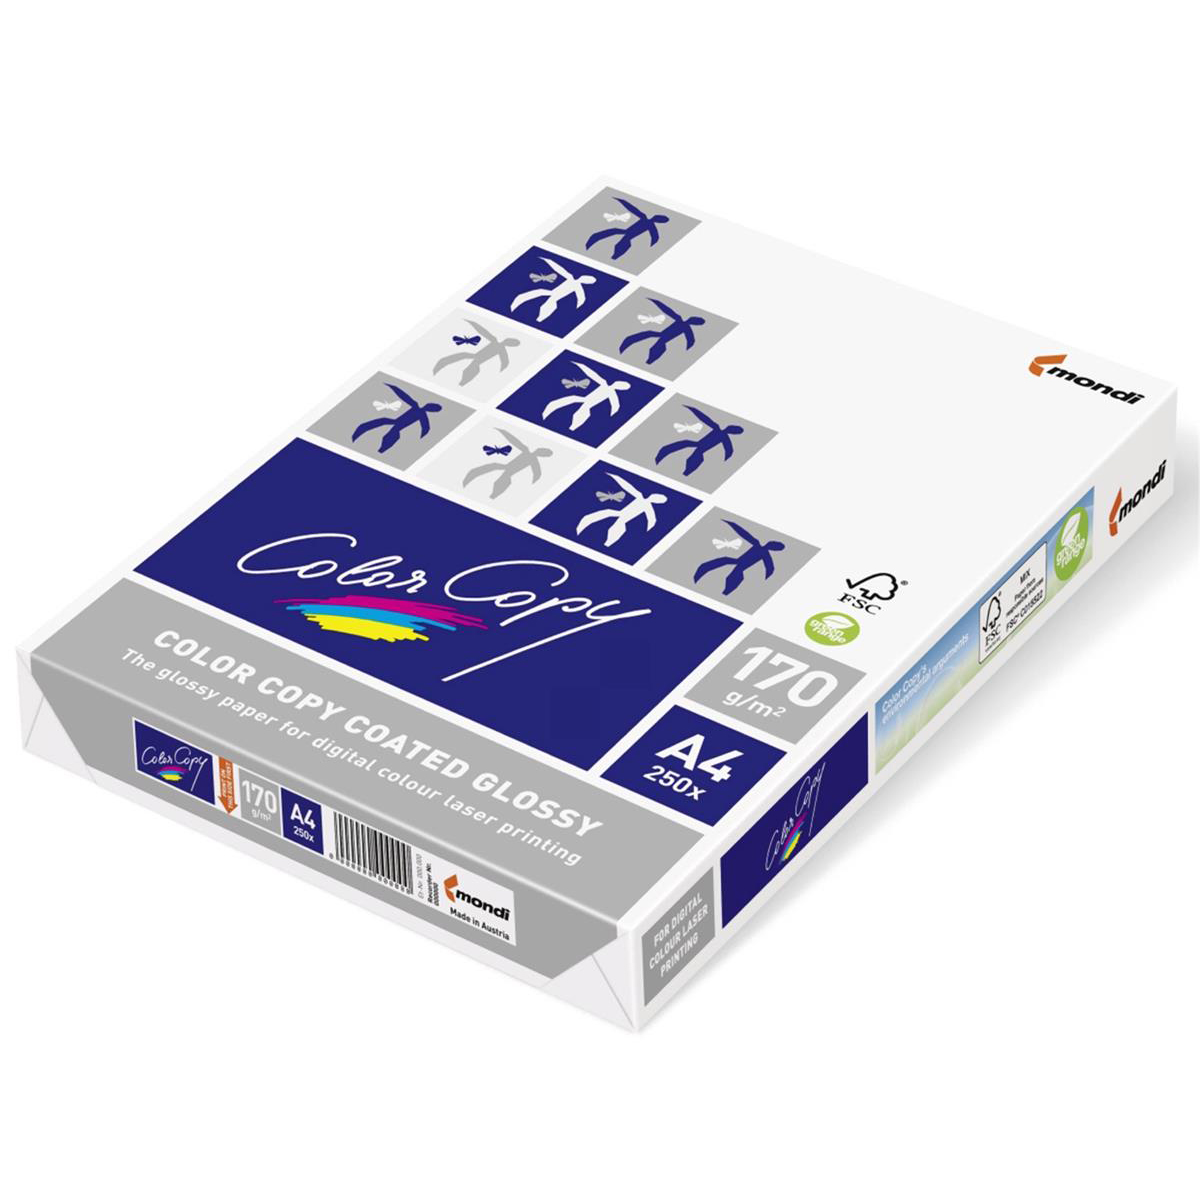 Card (160g+) Color Copy Card Premium Coated Glossy A4 170gsm FSC White Ref CCG0170 250 Sheets